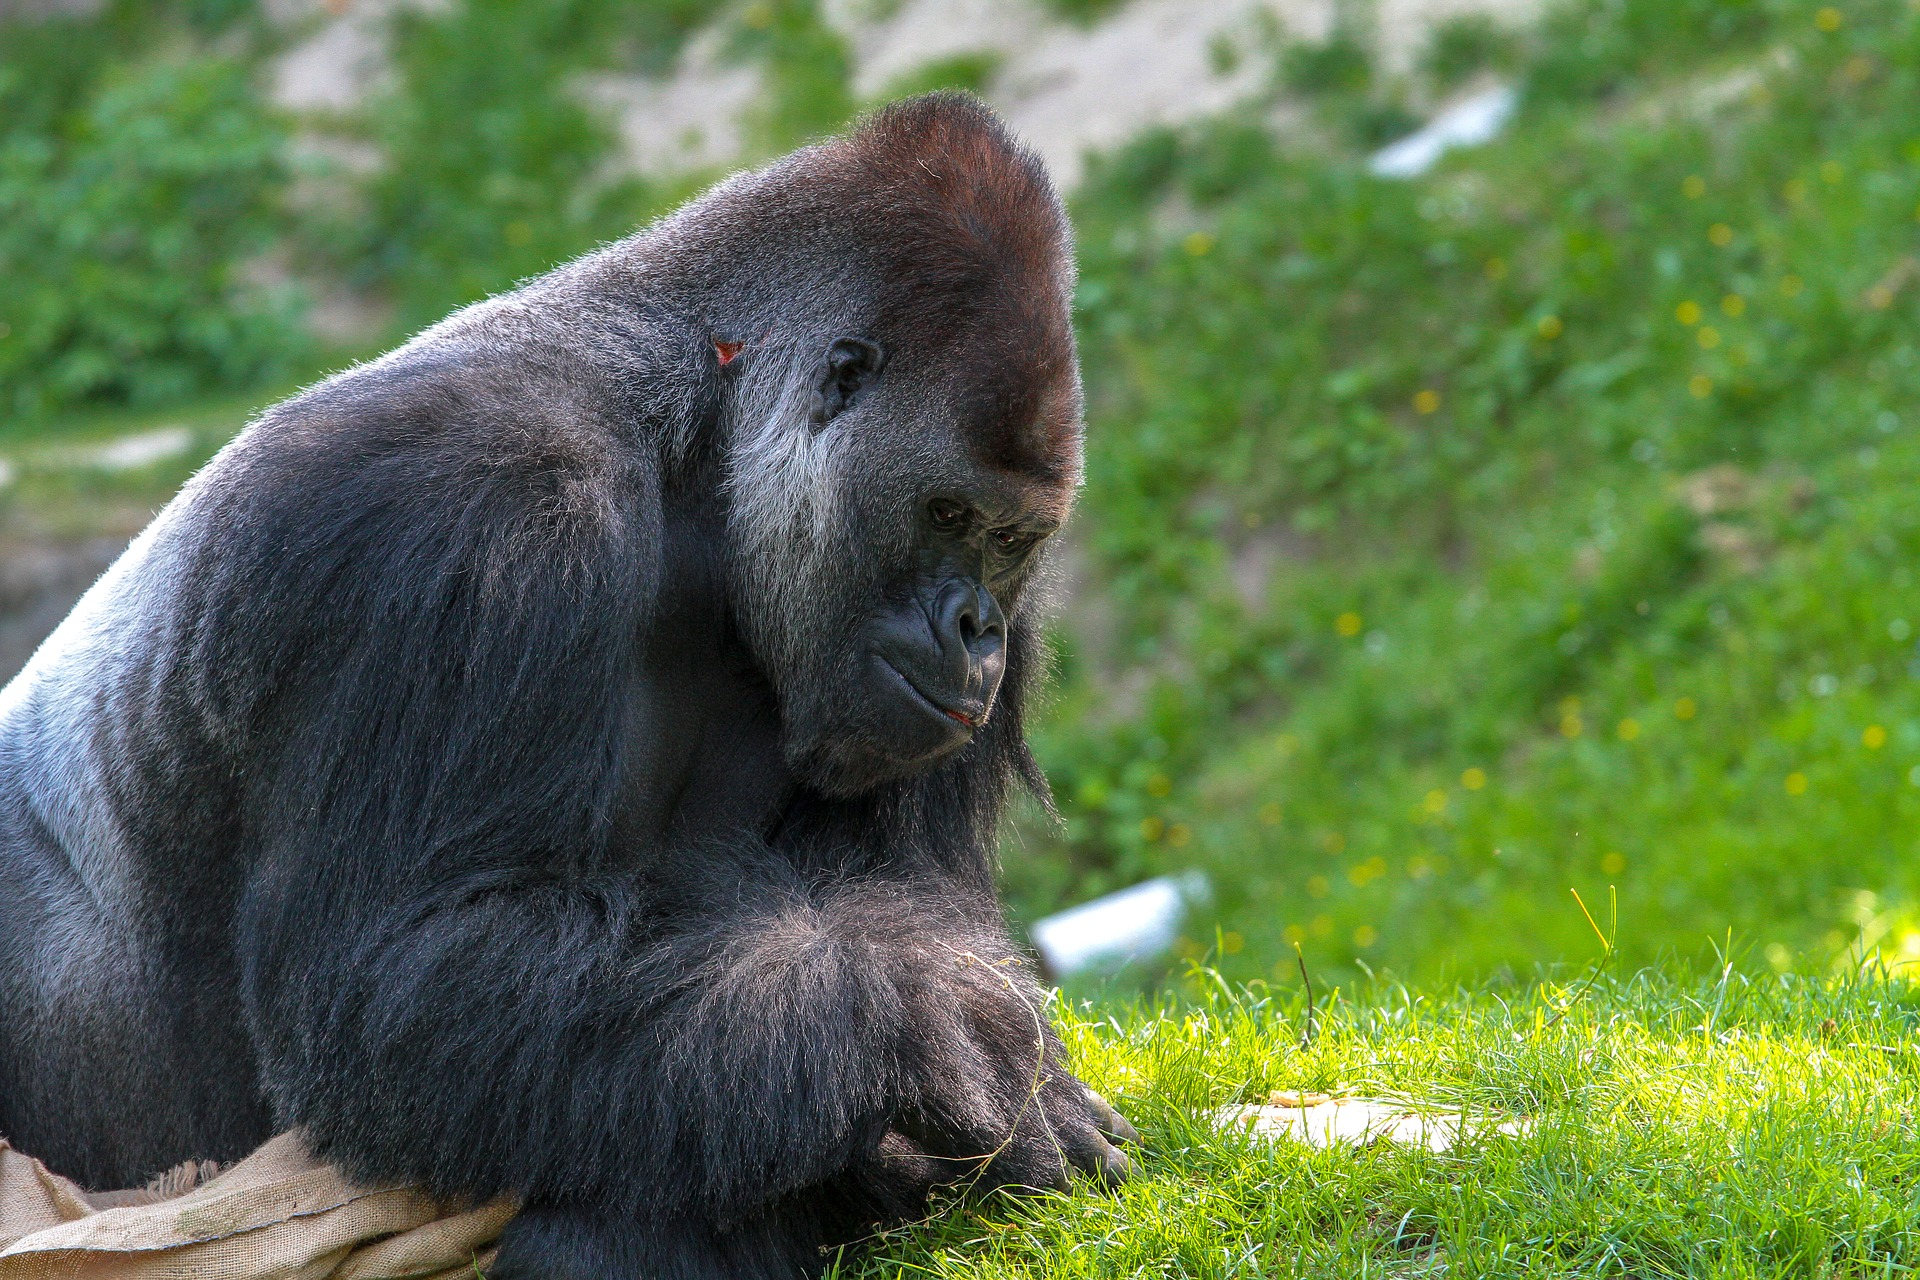 A group of gorillas infected with COVID-19 were found in a U.S. zoo